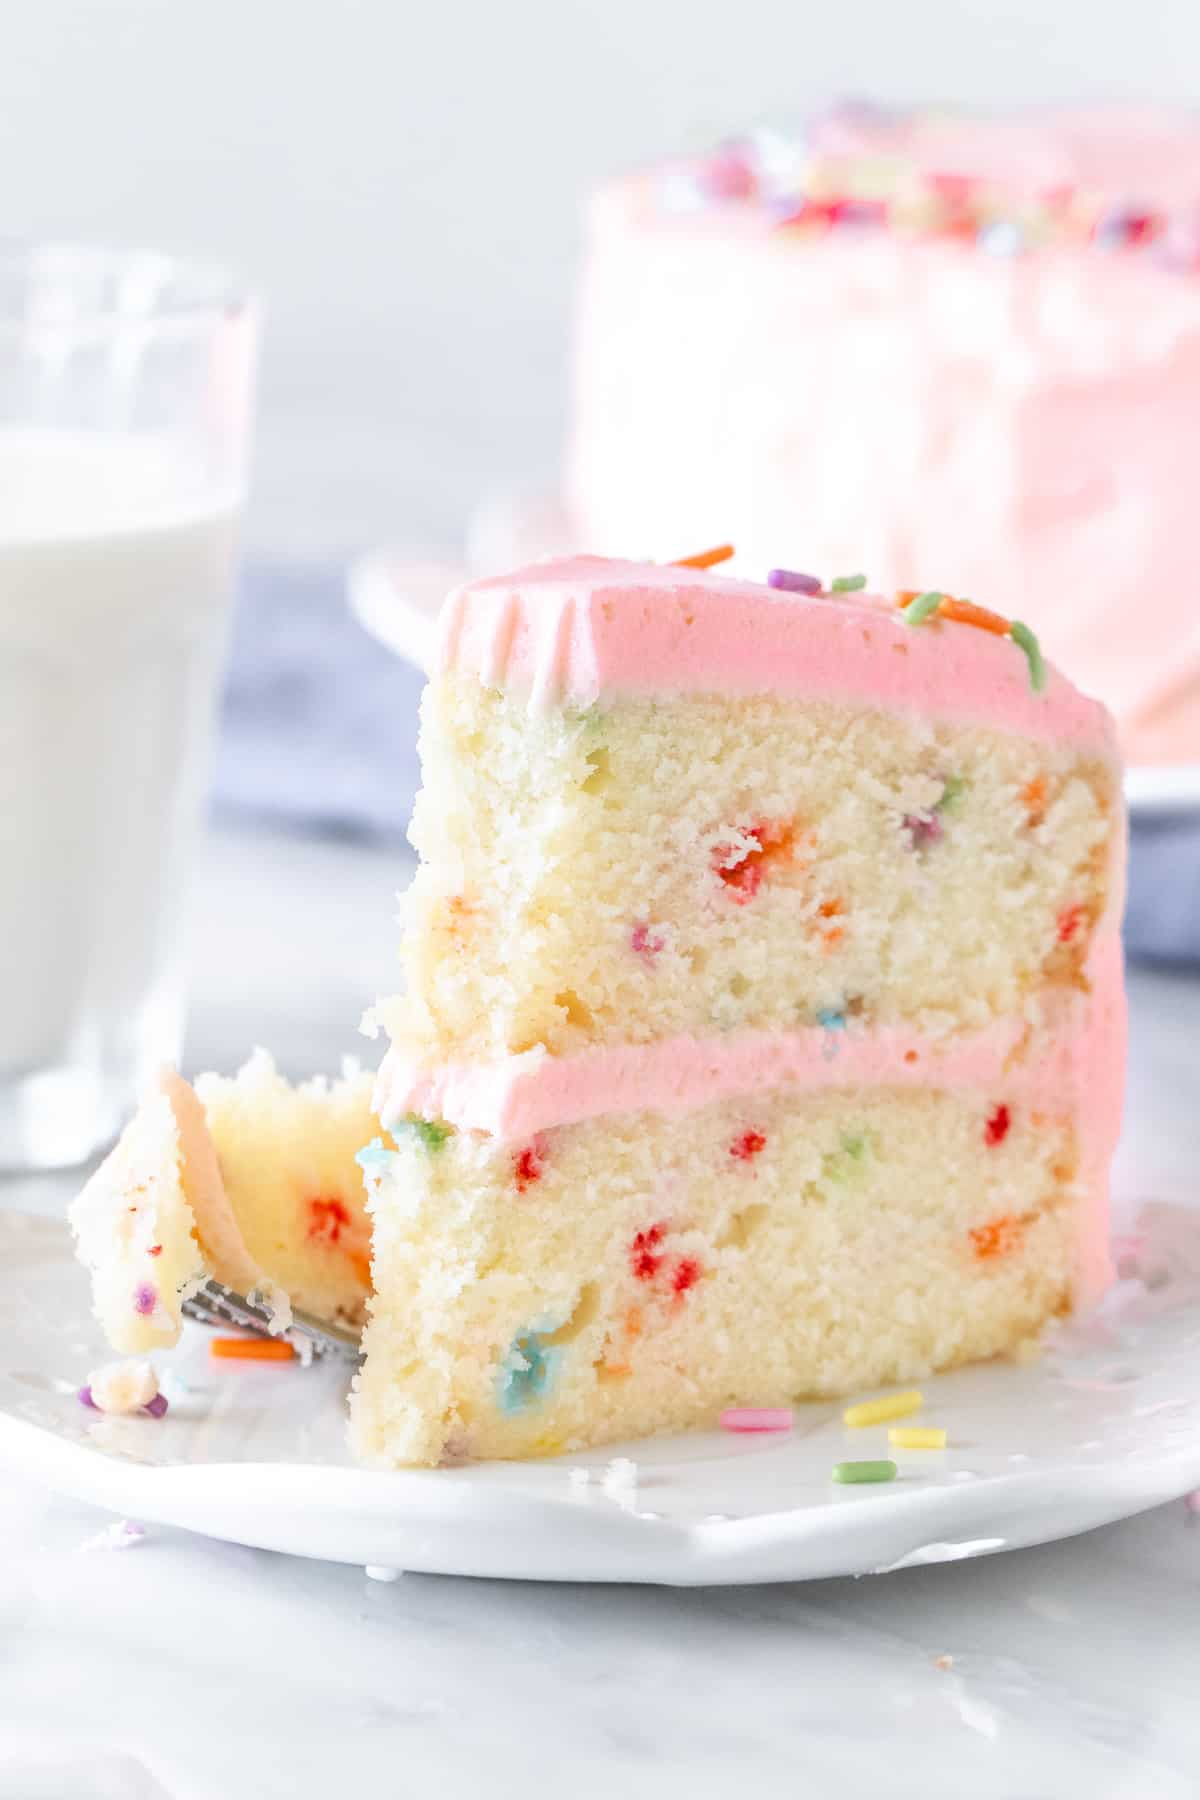 Slice of funfetti cake with pink frosting.